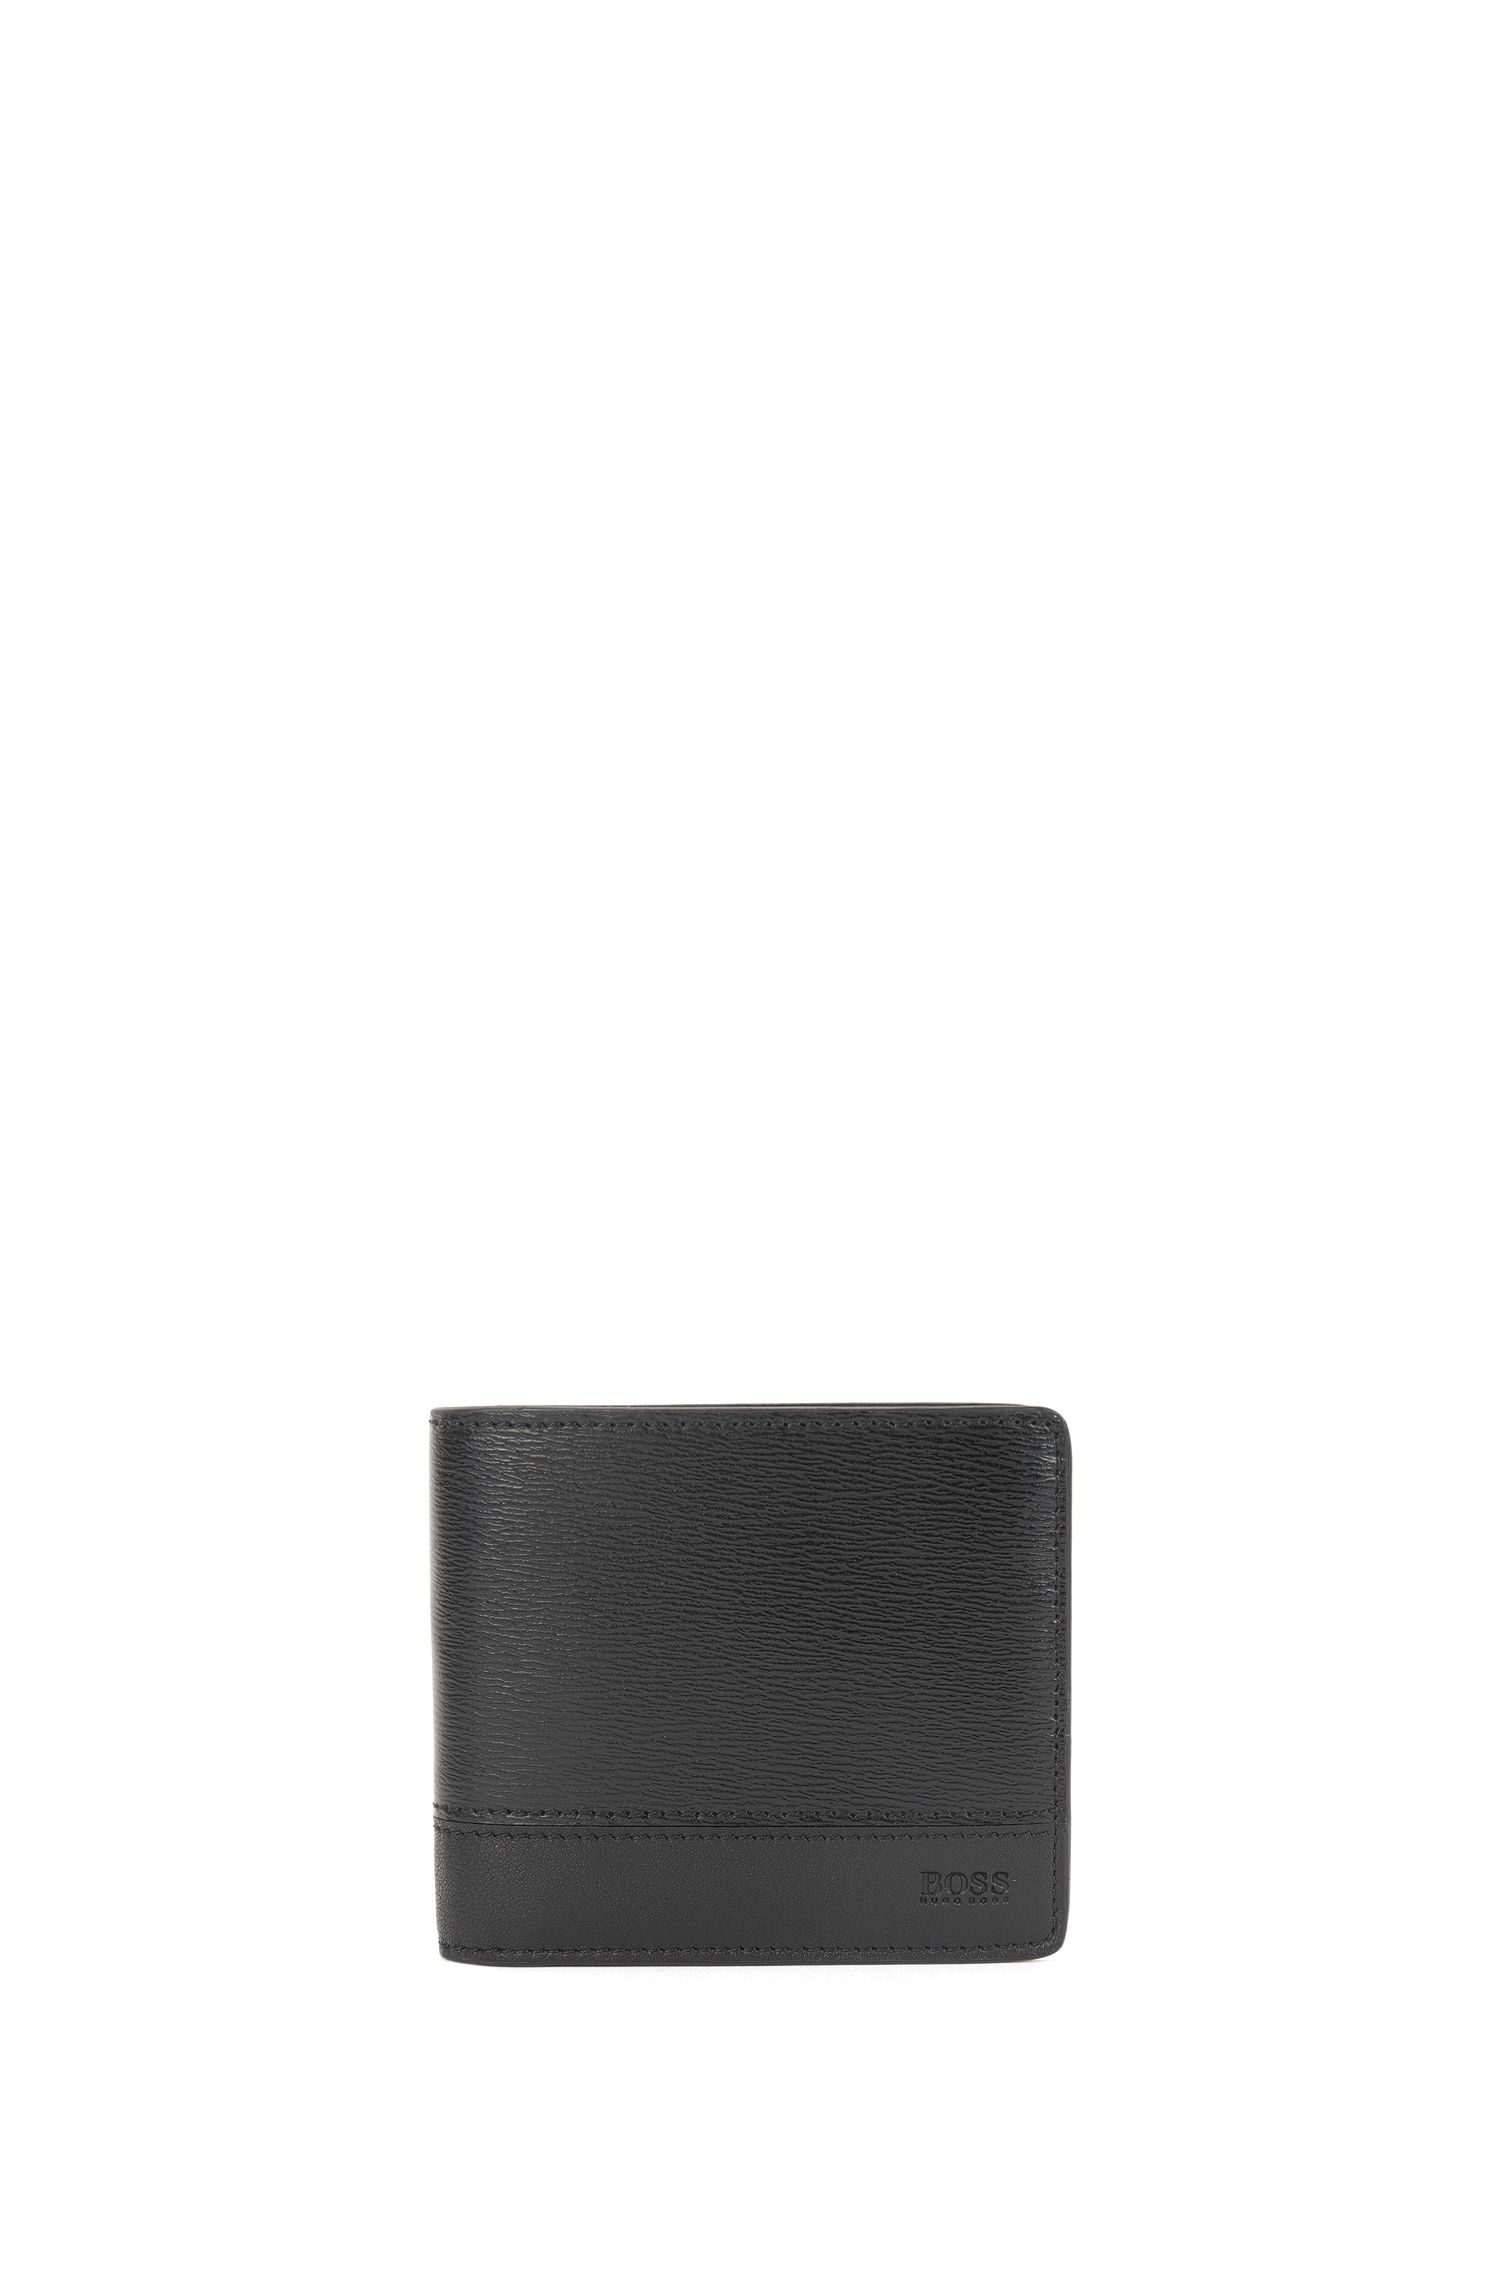 Leather Wallet With Coin Pouch | Focus 4 CC Coin, Black